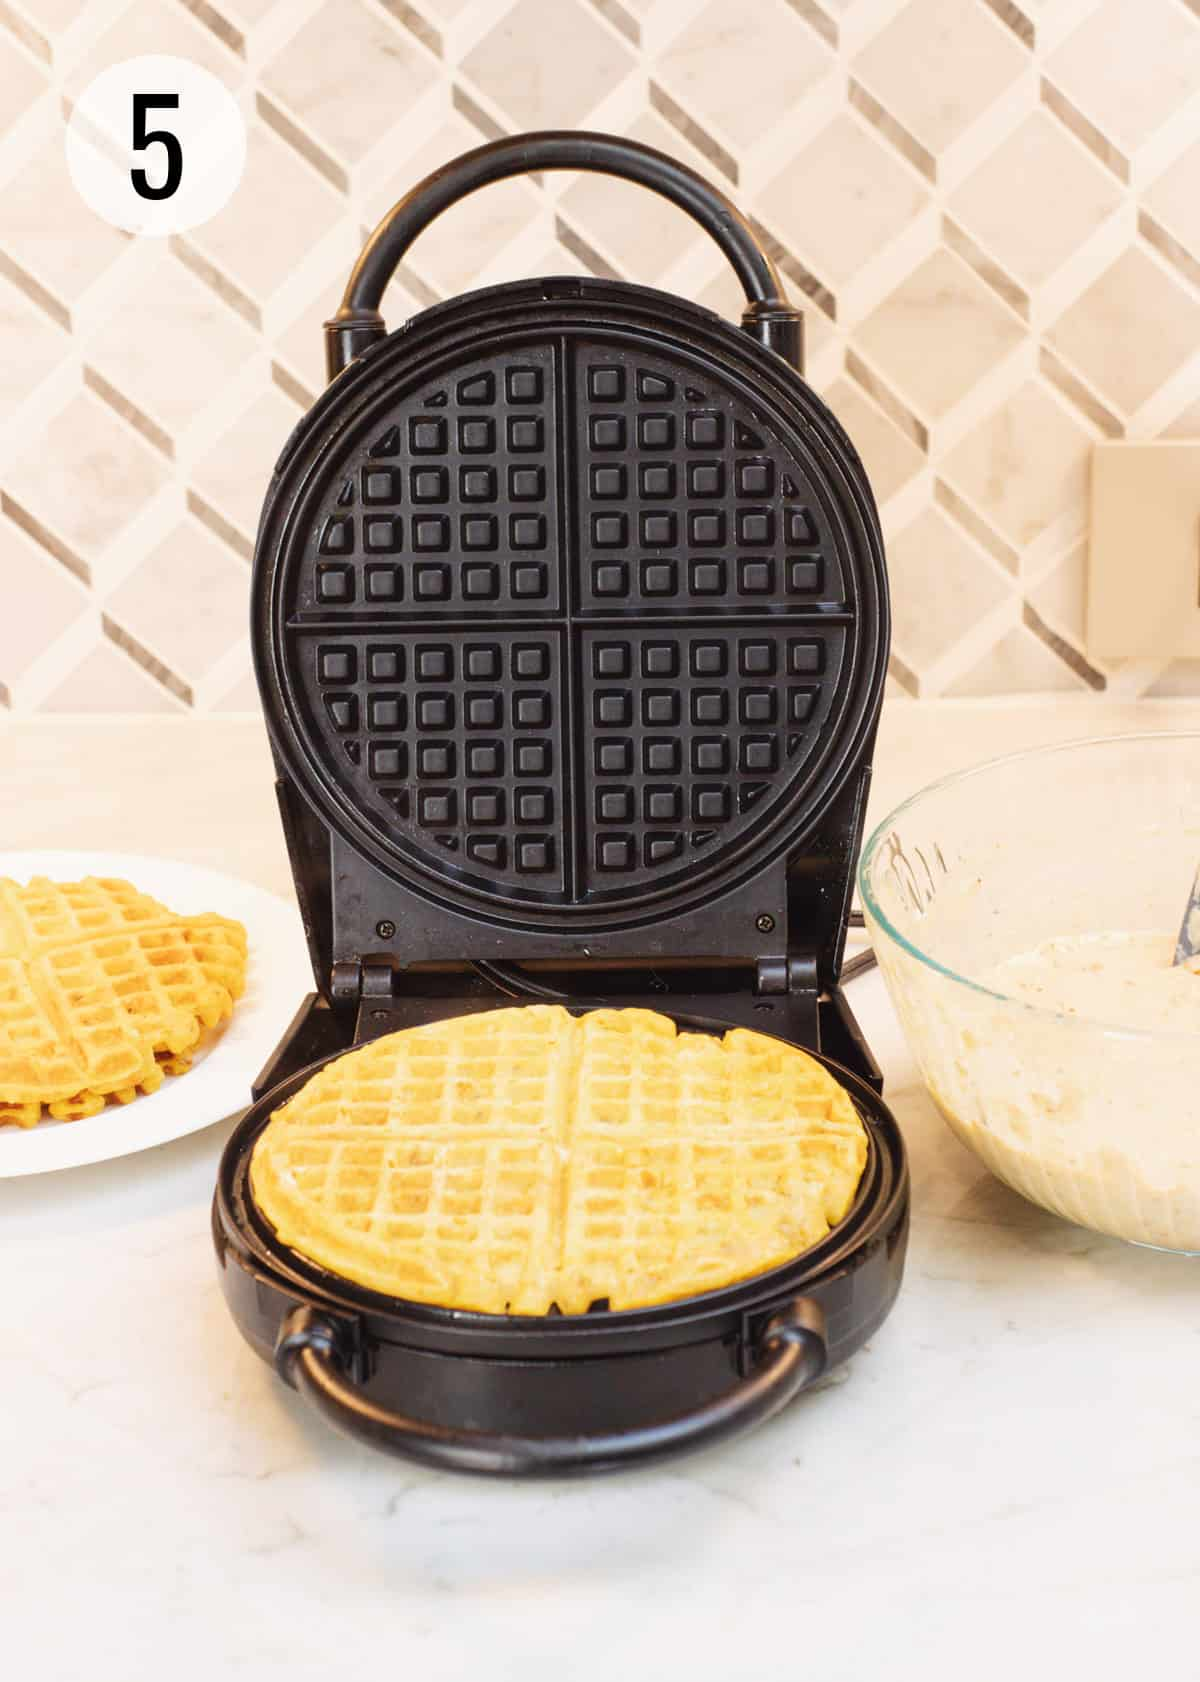 Round black waffle maker with baked pumpkin waffle on it and batter bowl to right and more baked waffles on a plate on left.